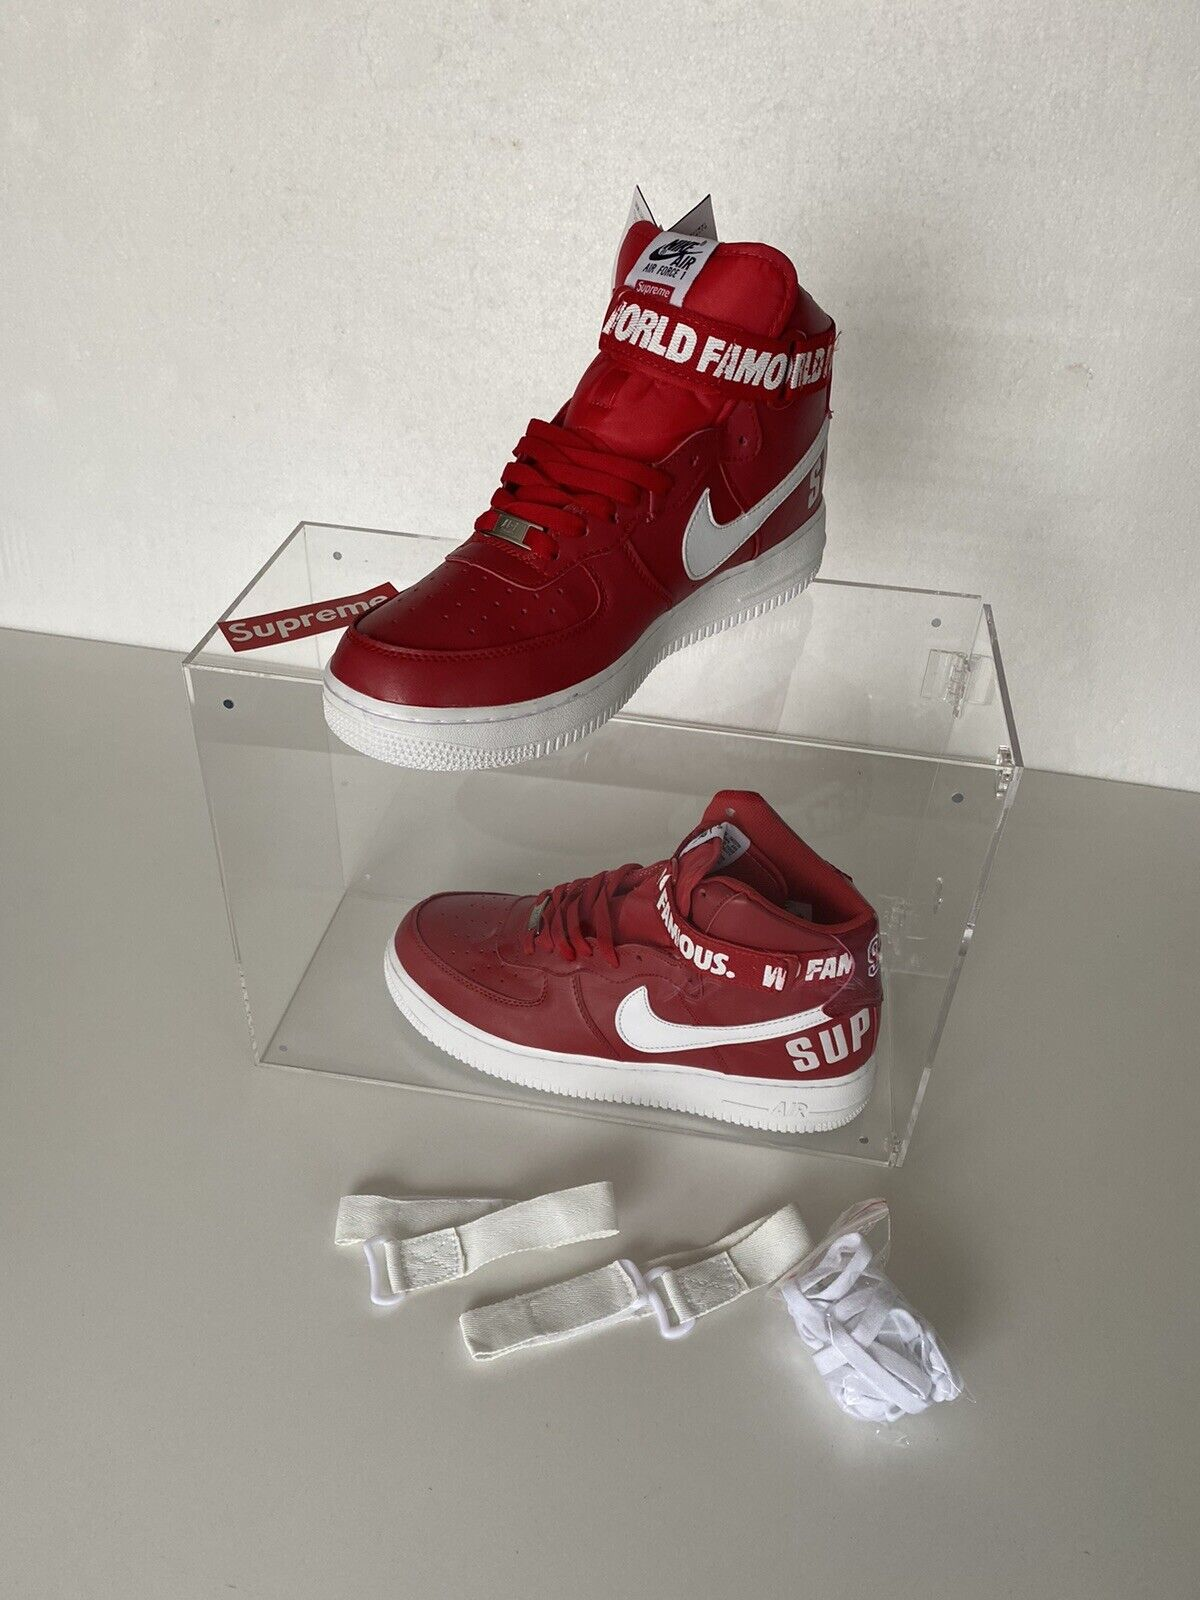 Nike Air Force 1 Supreme World Famous (Red) UK 10 US 11 EUR 45